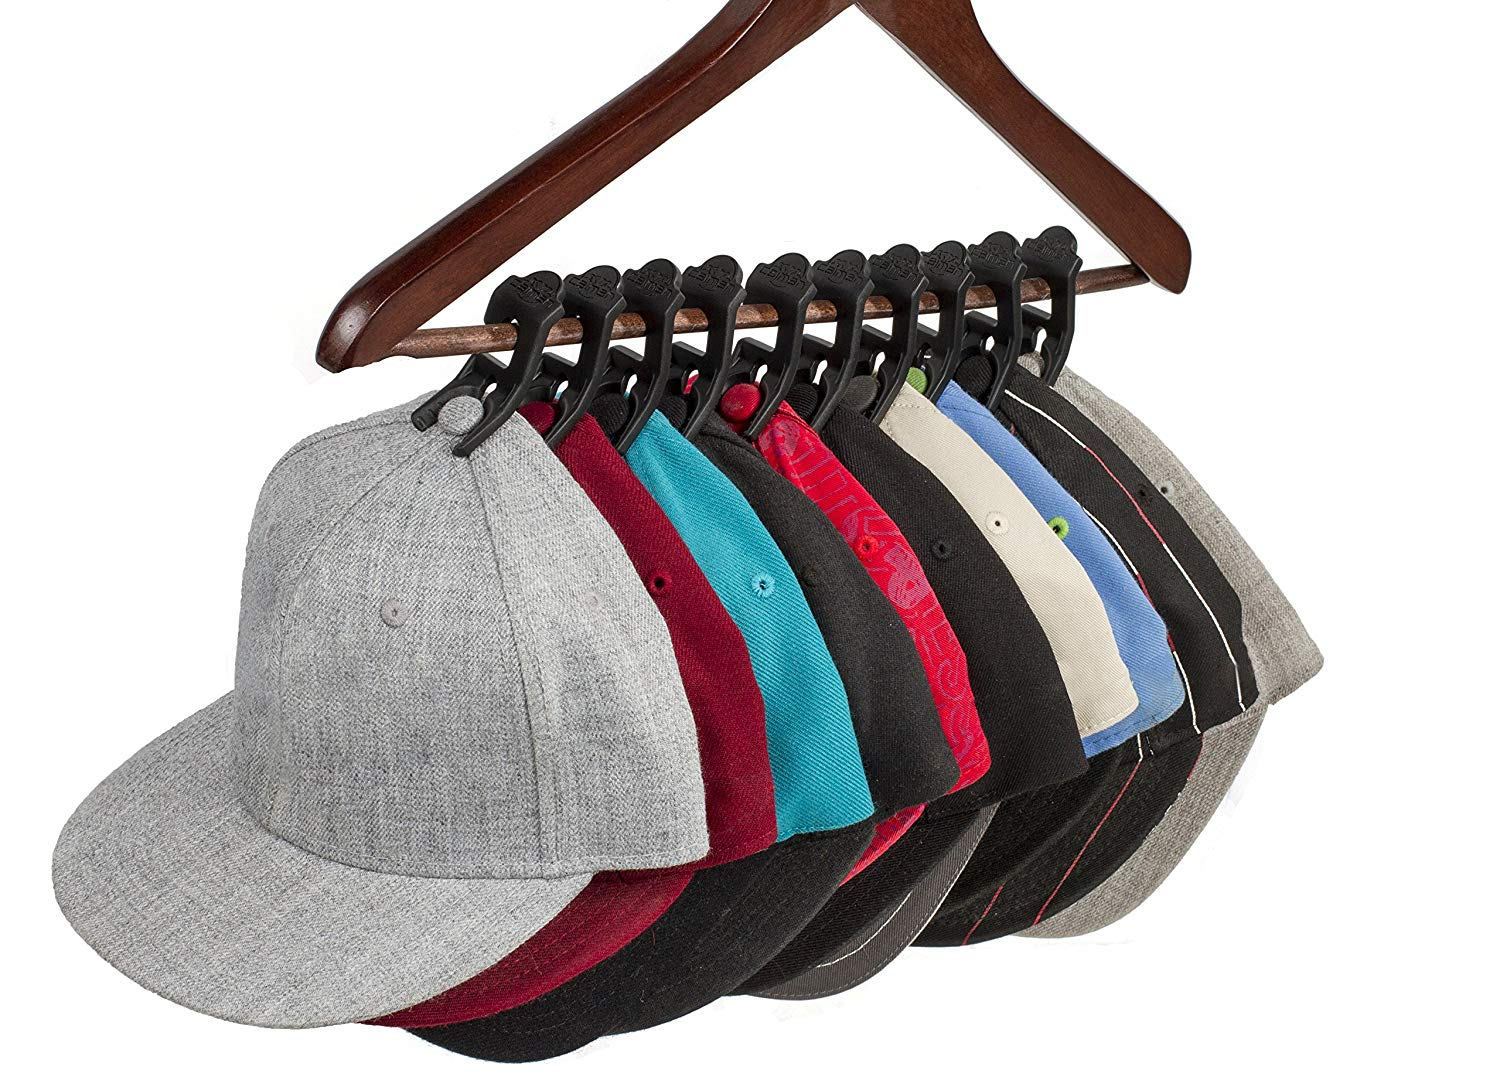 Caiman Hat Clips The Hat Organizer That Fits In Your Closet And